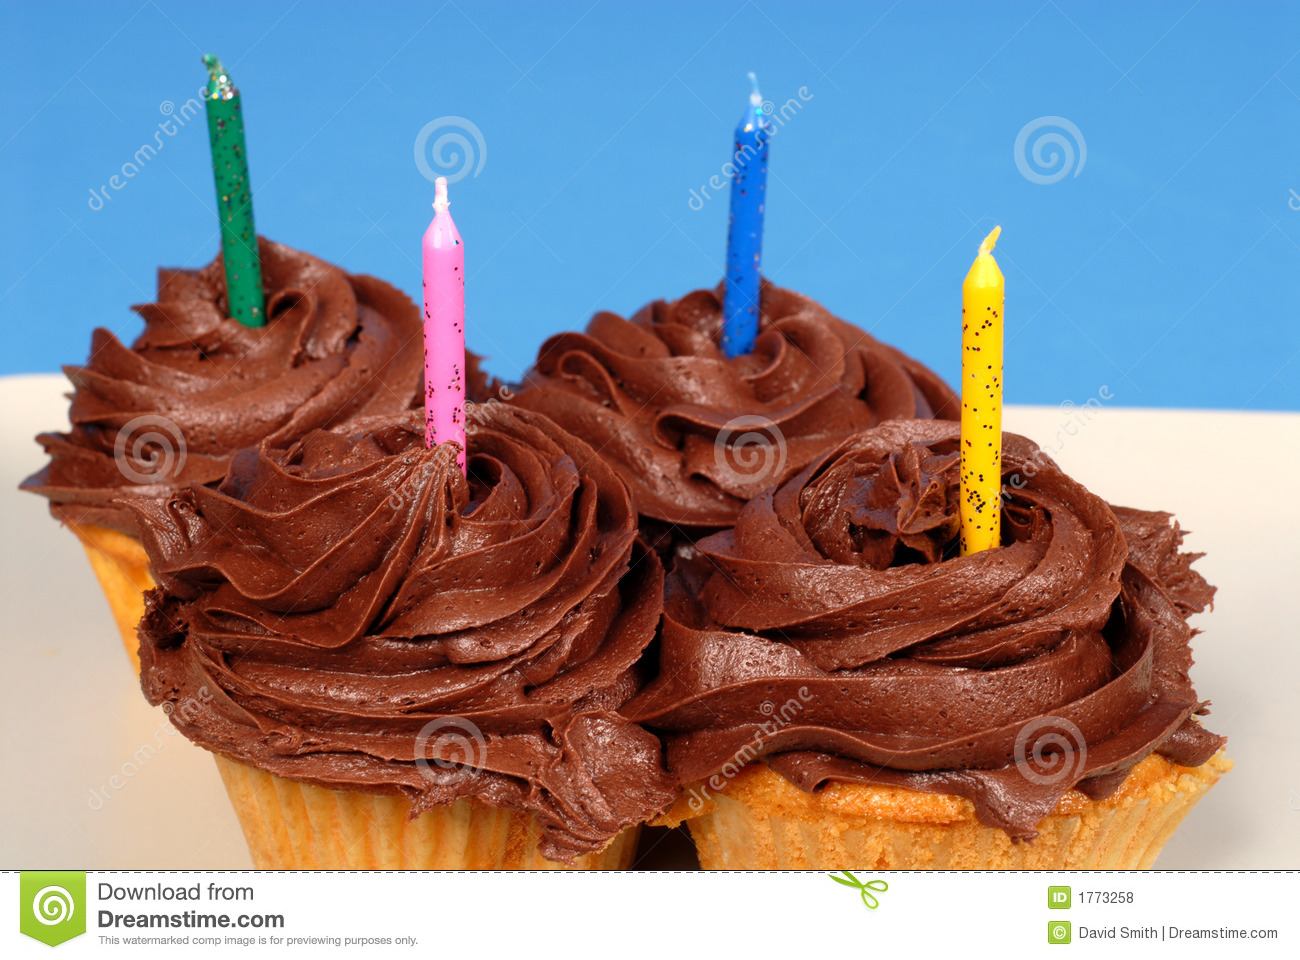 Four Chocolate Frosted Cupcakes With Candles Royalty Free ...